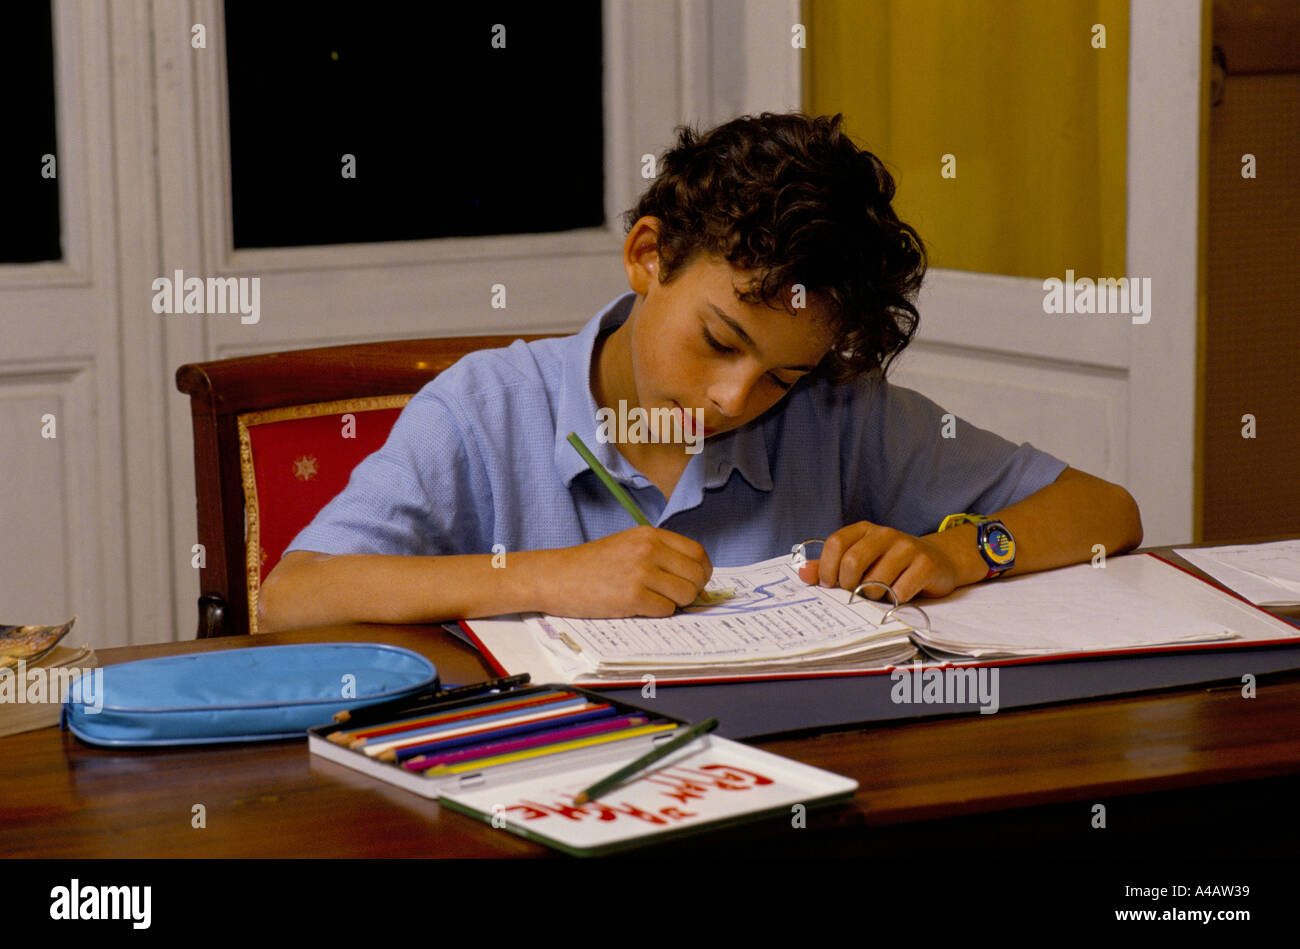 A boy does his school work,Cothill School is a fee-paying private prep school based in Oxfordshire, England - Stock Image